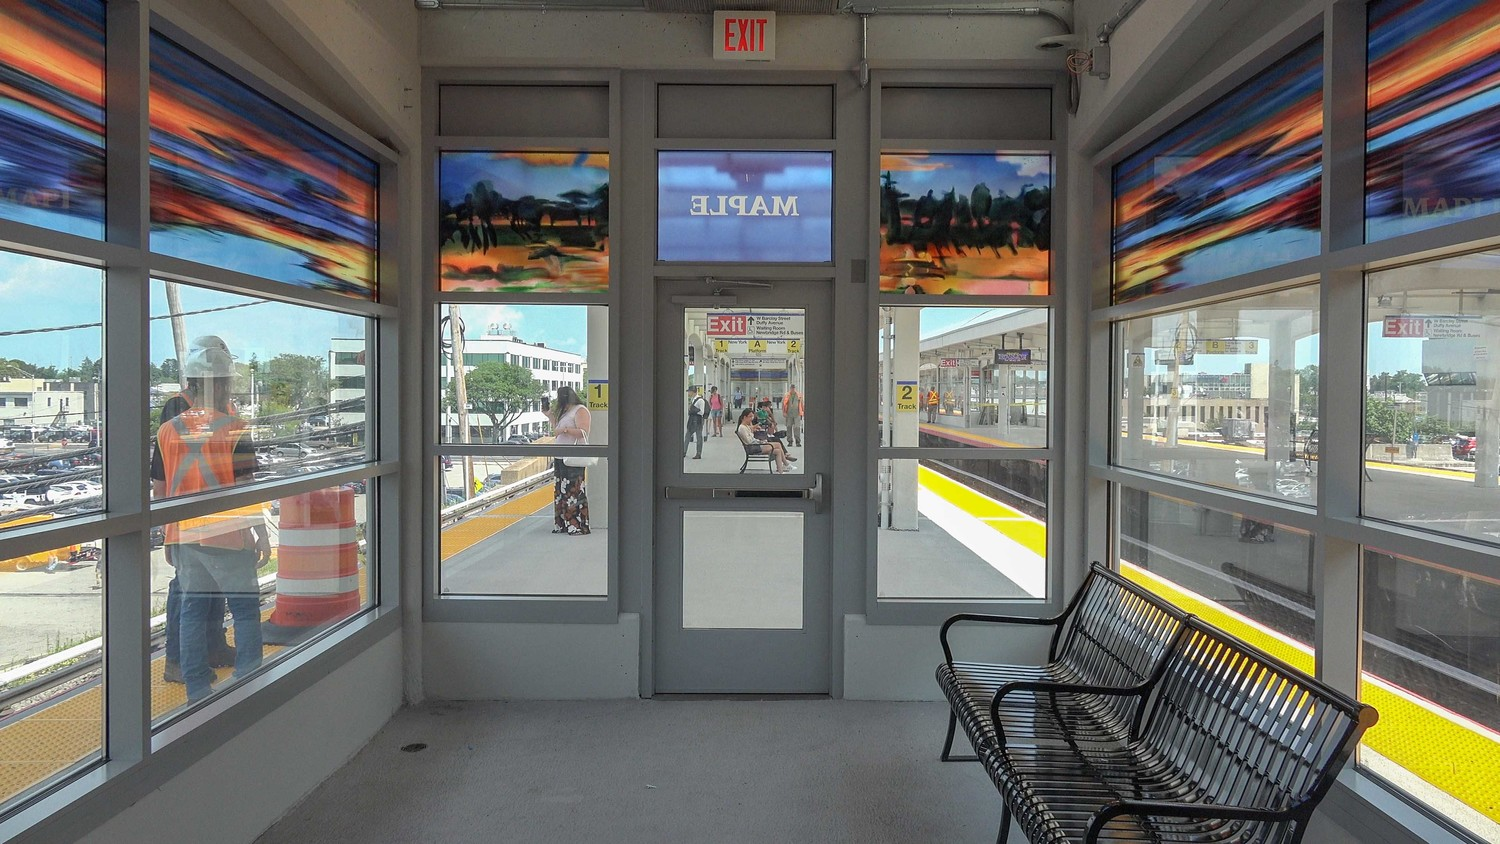 the station renovation project will include the installation of two new glass waiting rooms on the platforms.